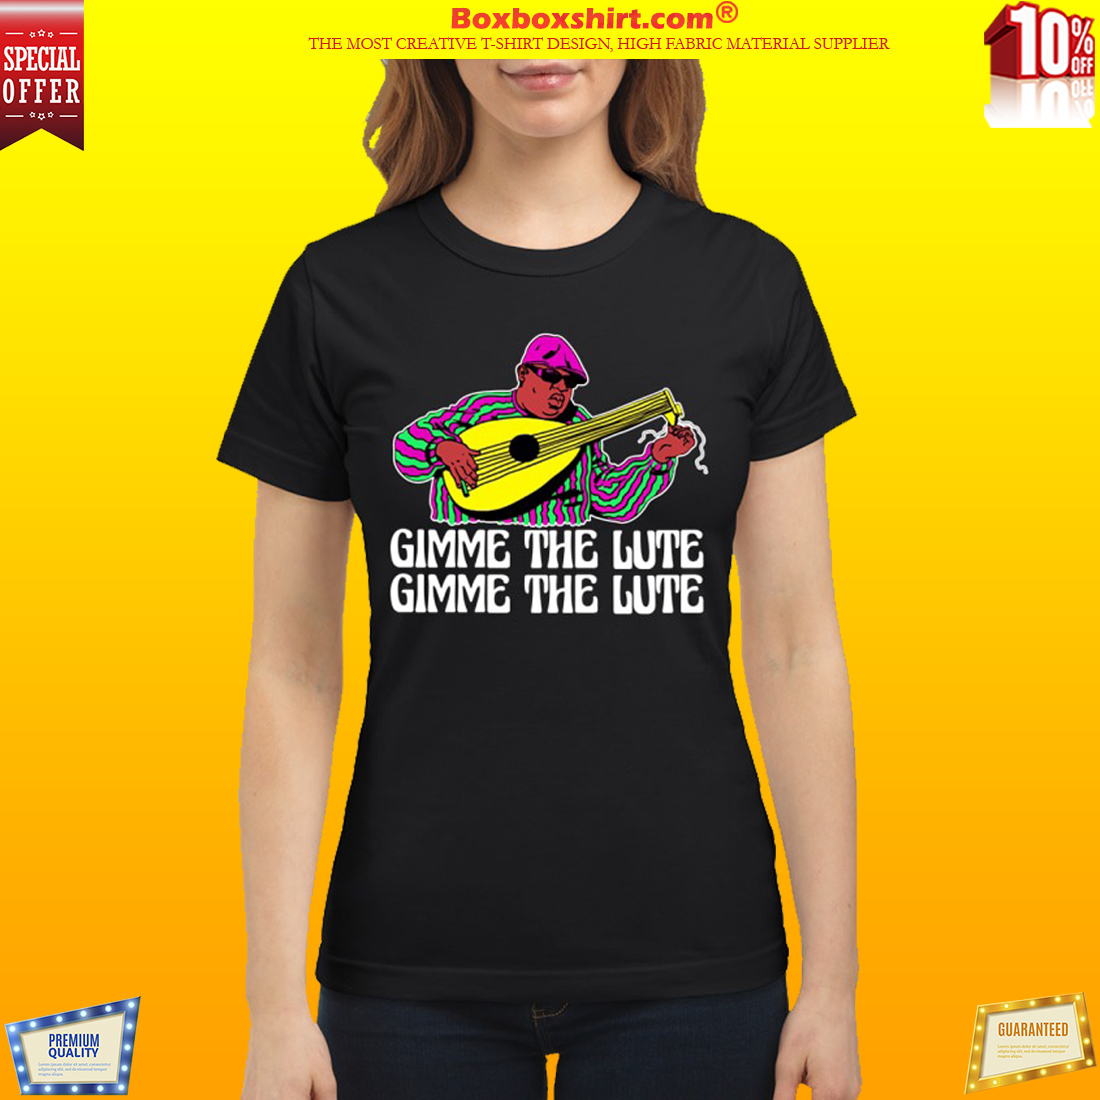 Notrorious BIG gimme the lute classic shirt